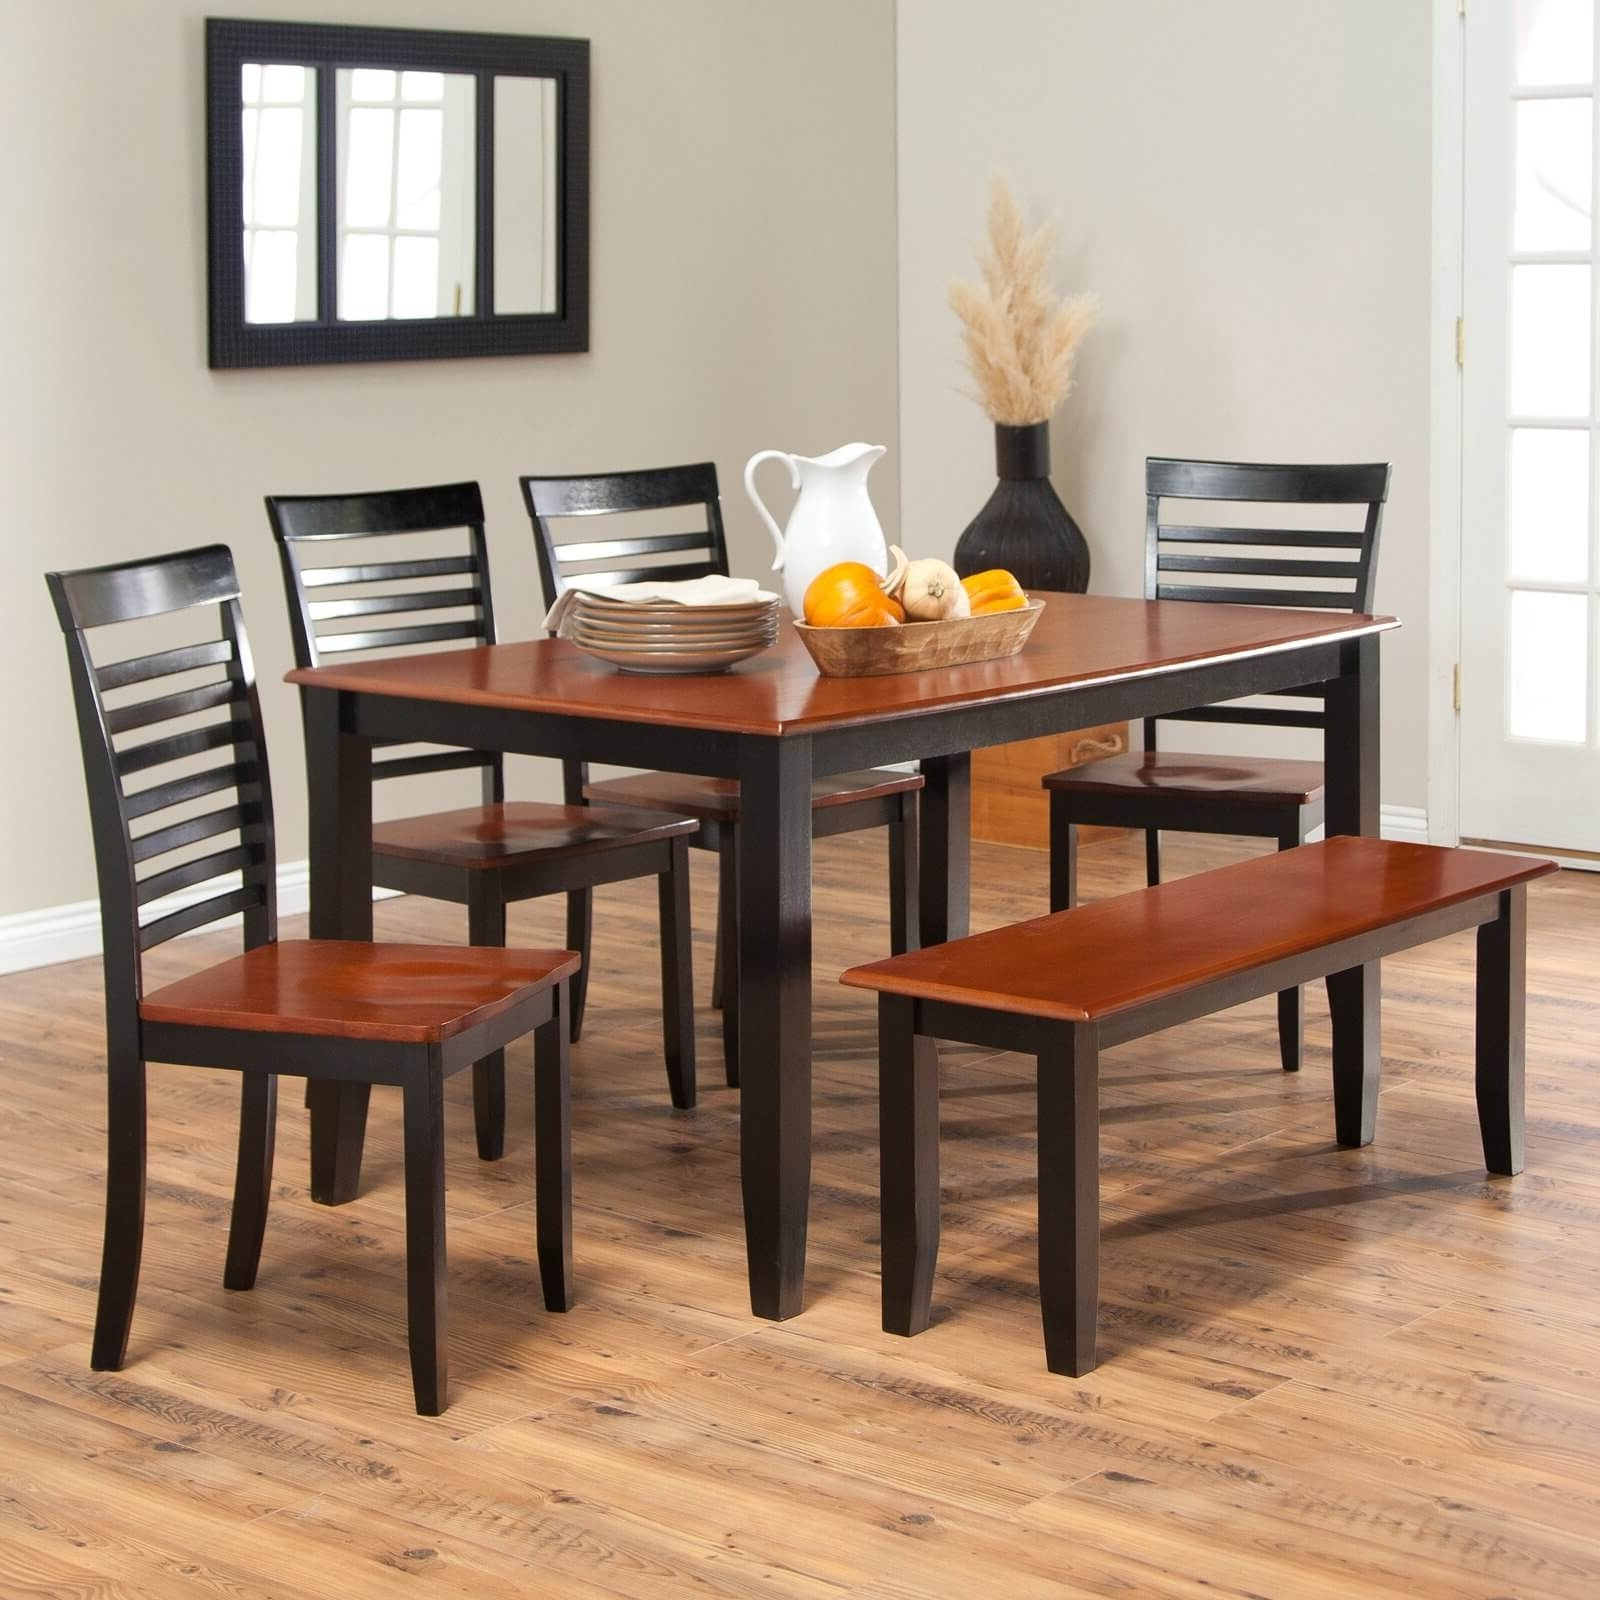 Dark Wood Dining Tables And 6 Chairs within Latest 26 Dining Room Sets (Big And Small) With Bench Seating (2018)